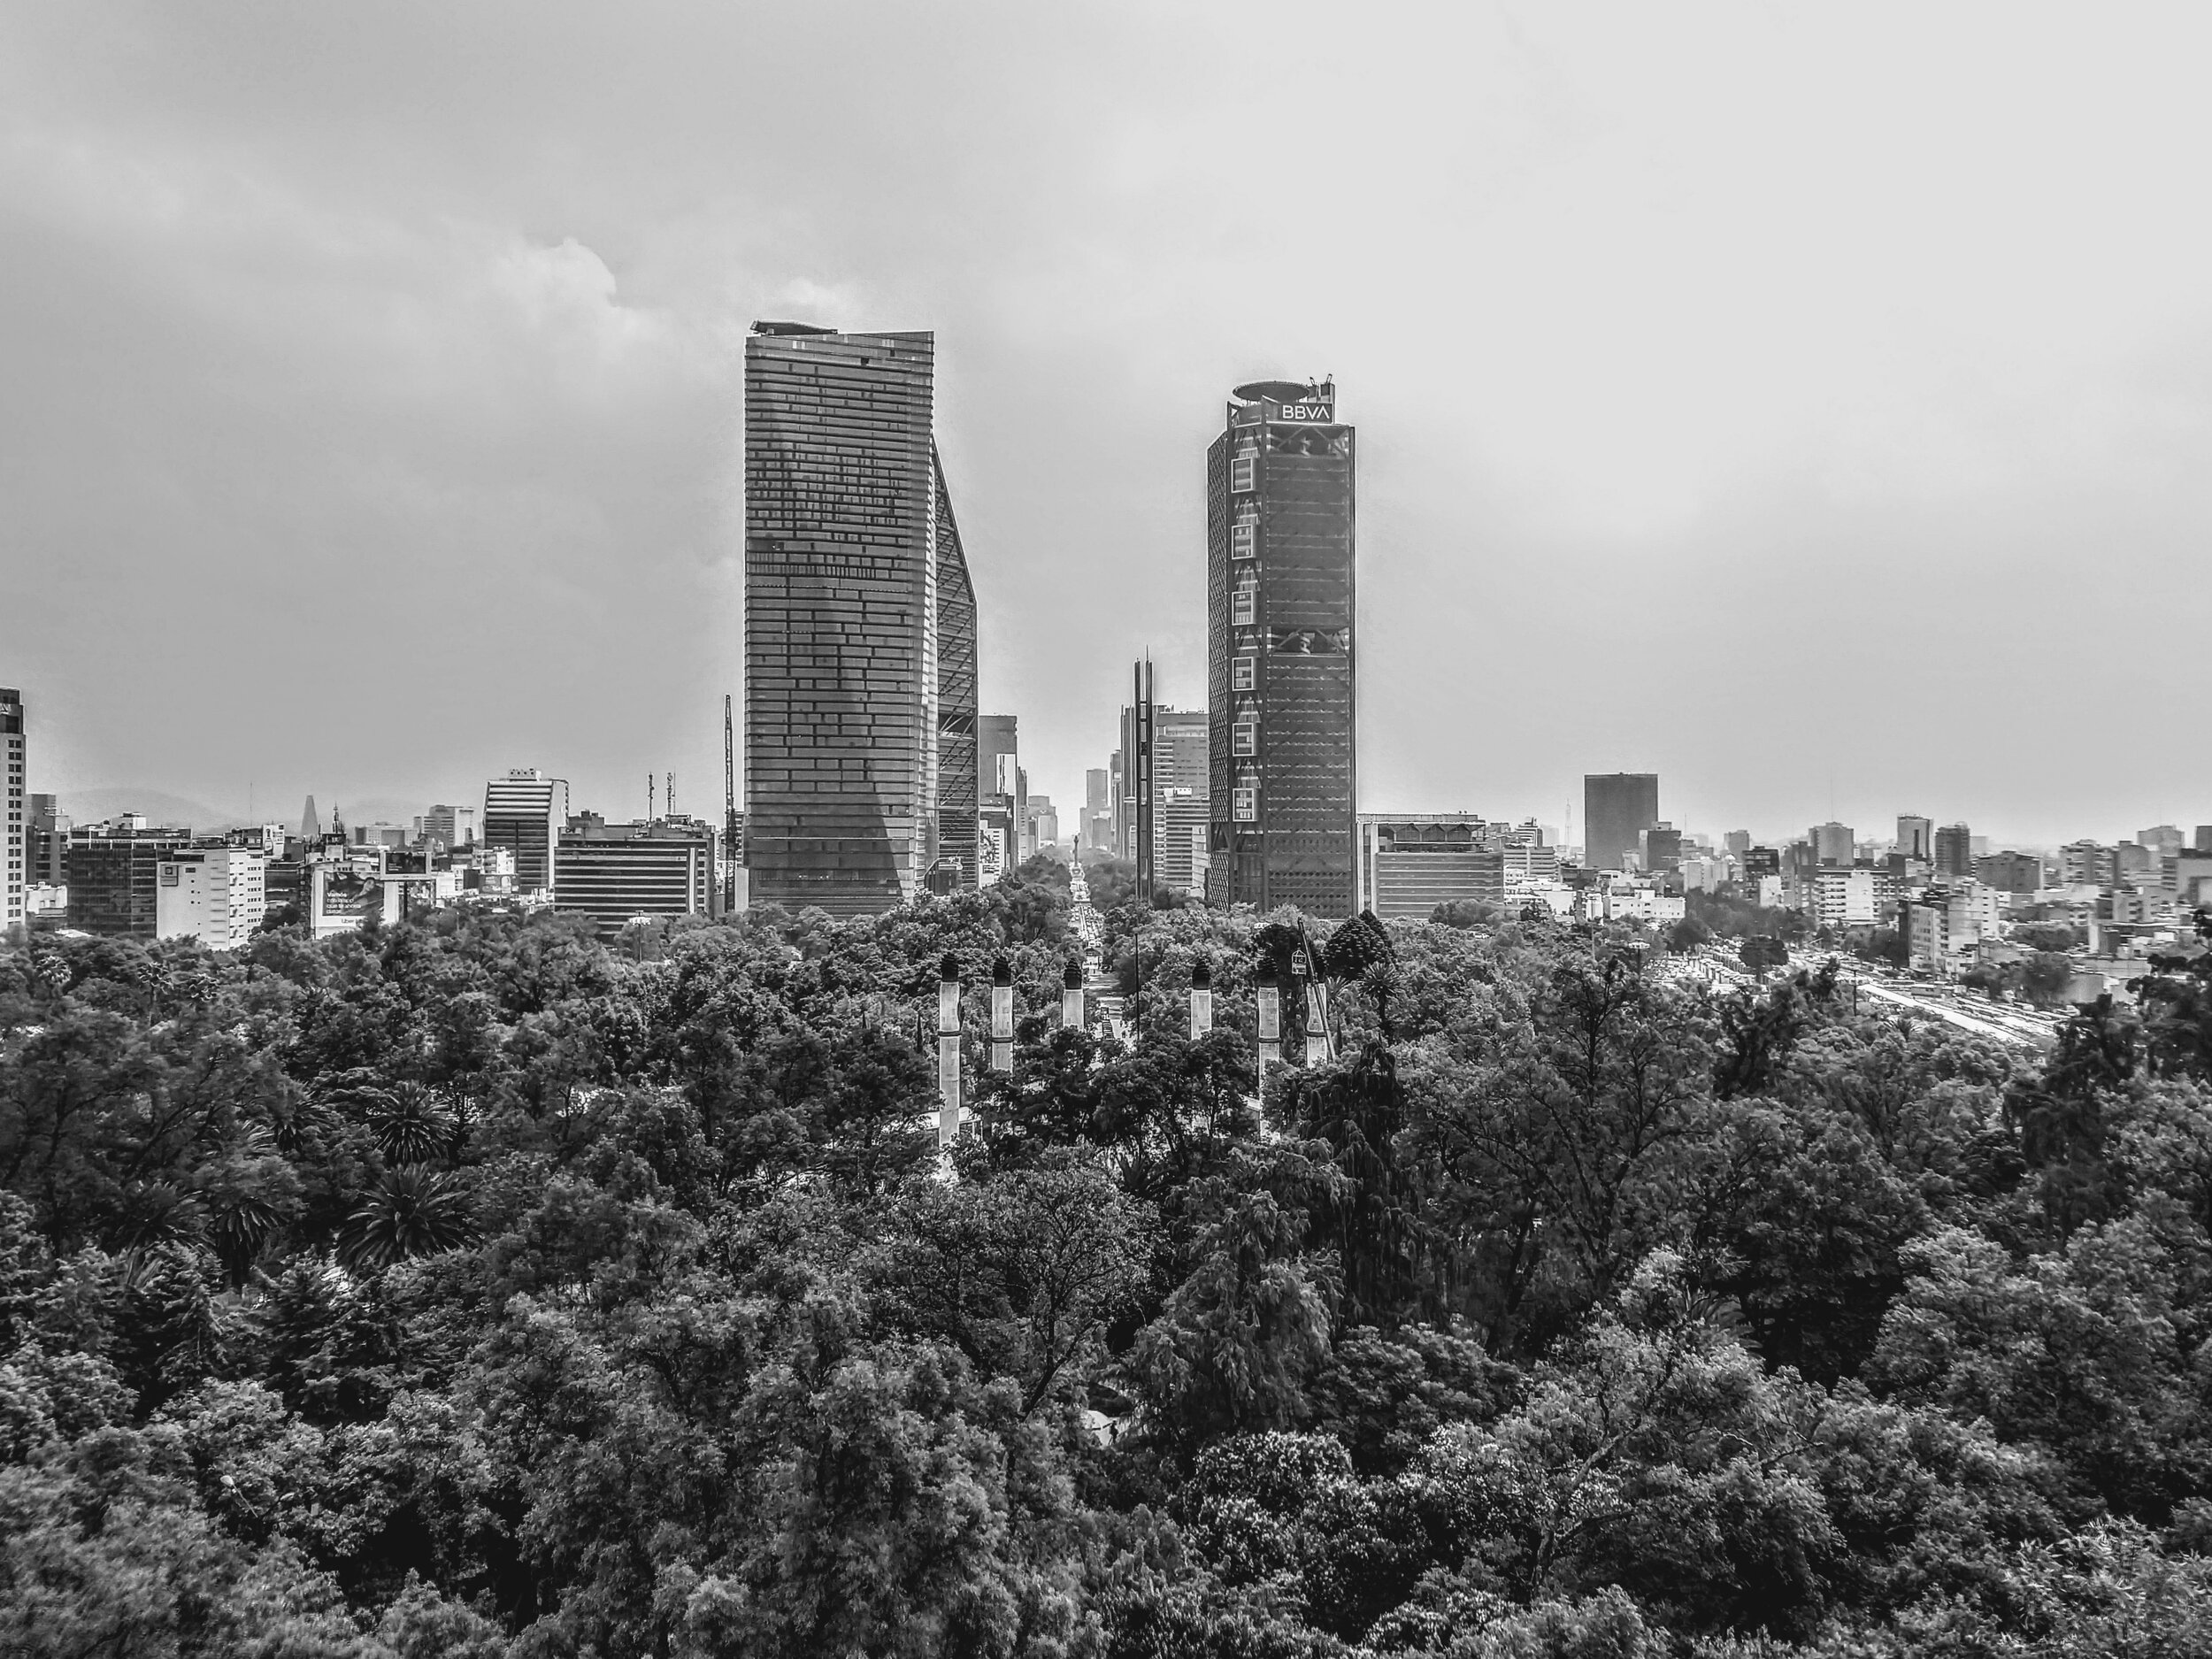 Taken from a castle in a park in Mexico City